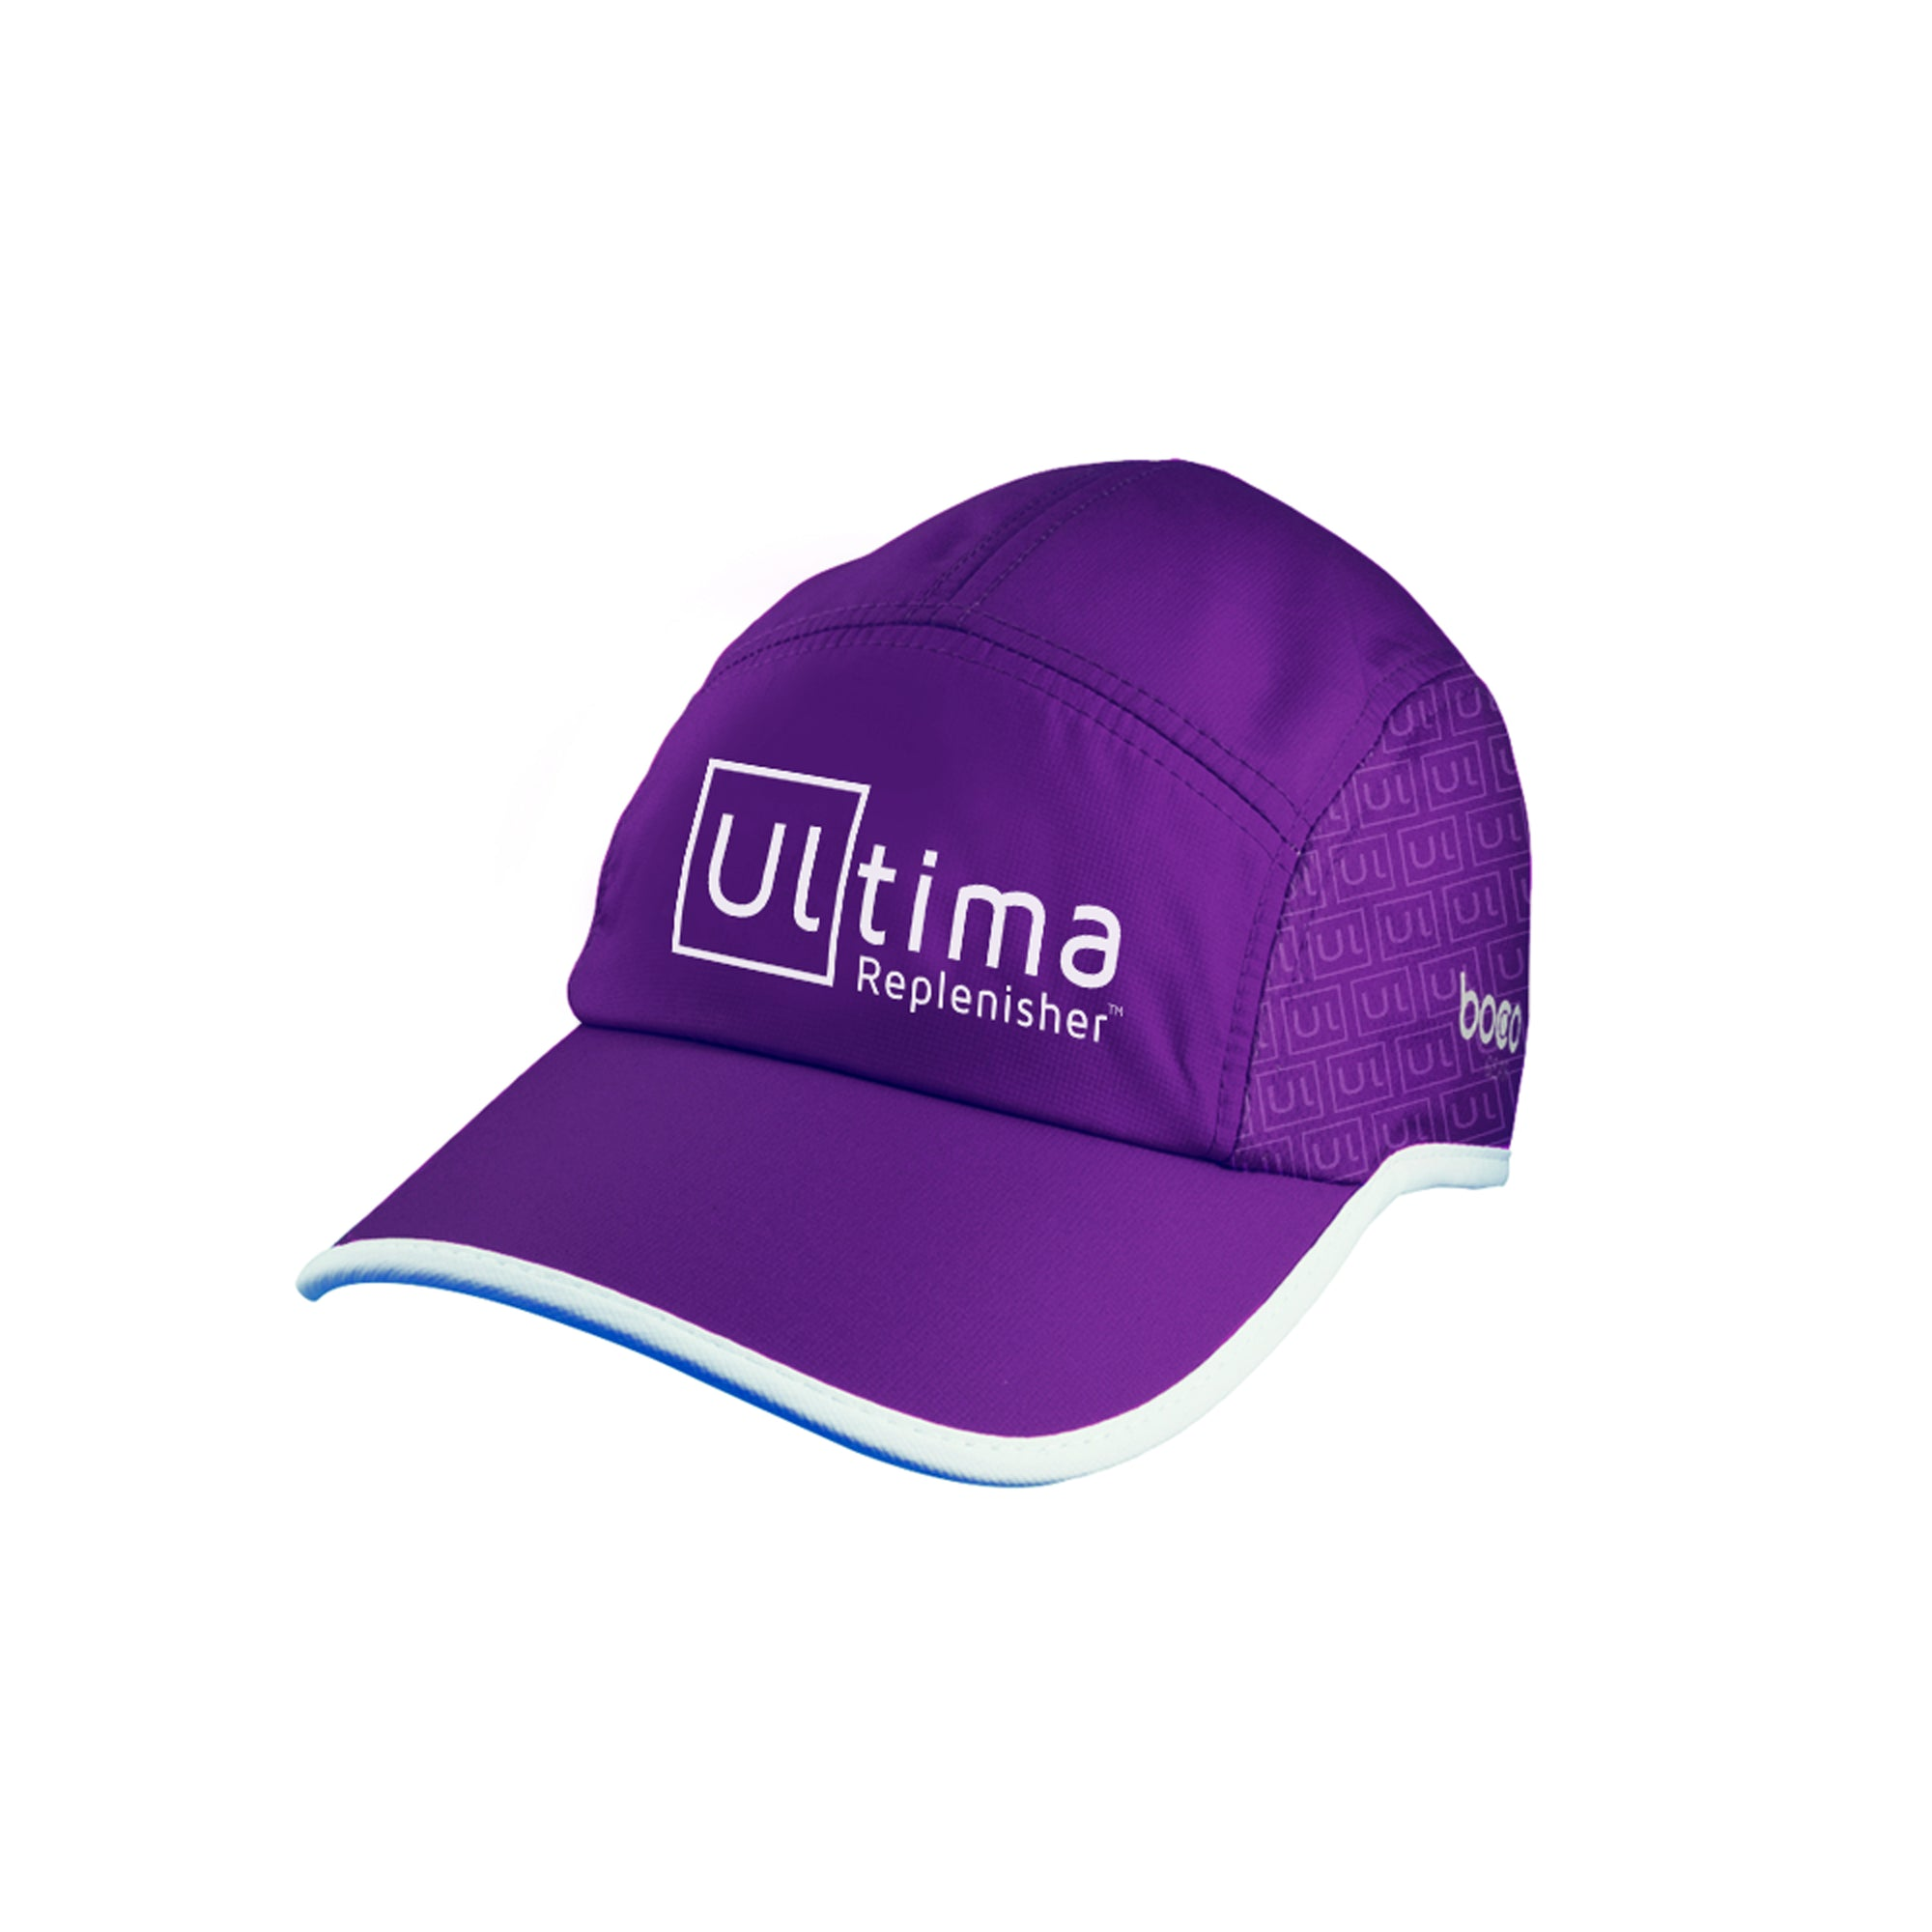 Ultima Replenisher Electrolyte Hydration Runners Hat